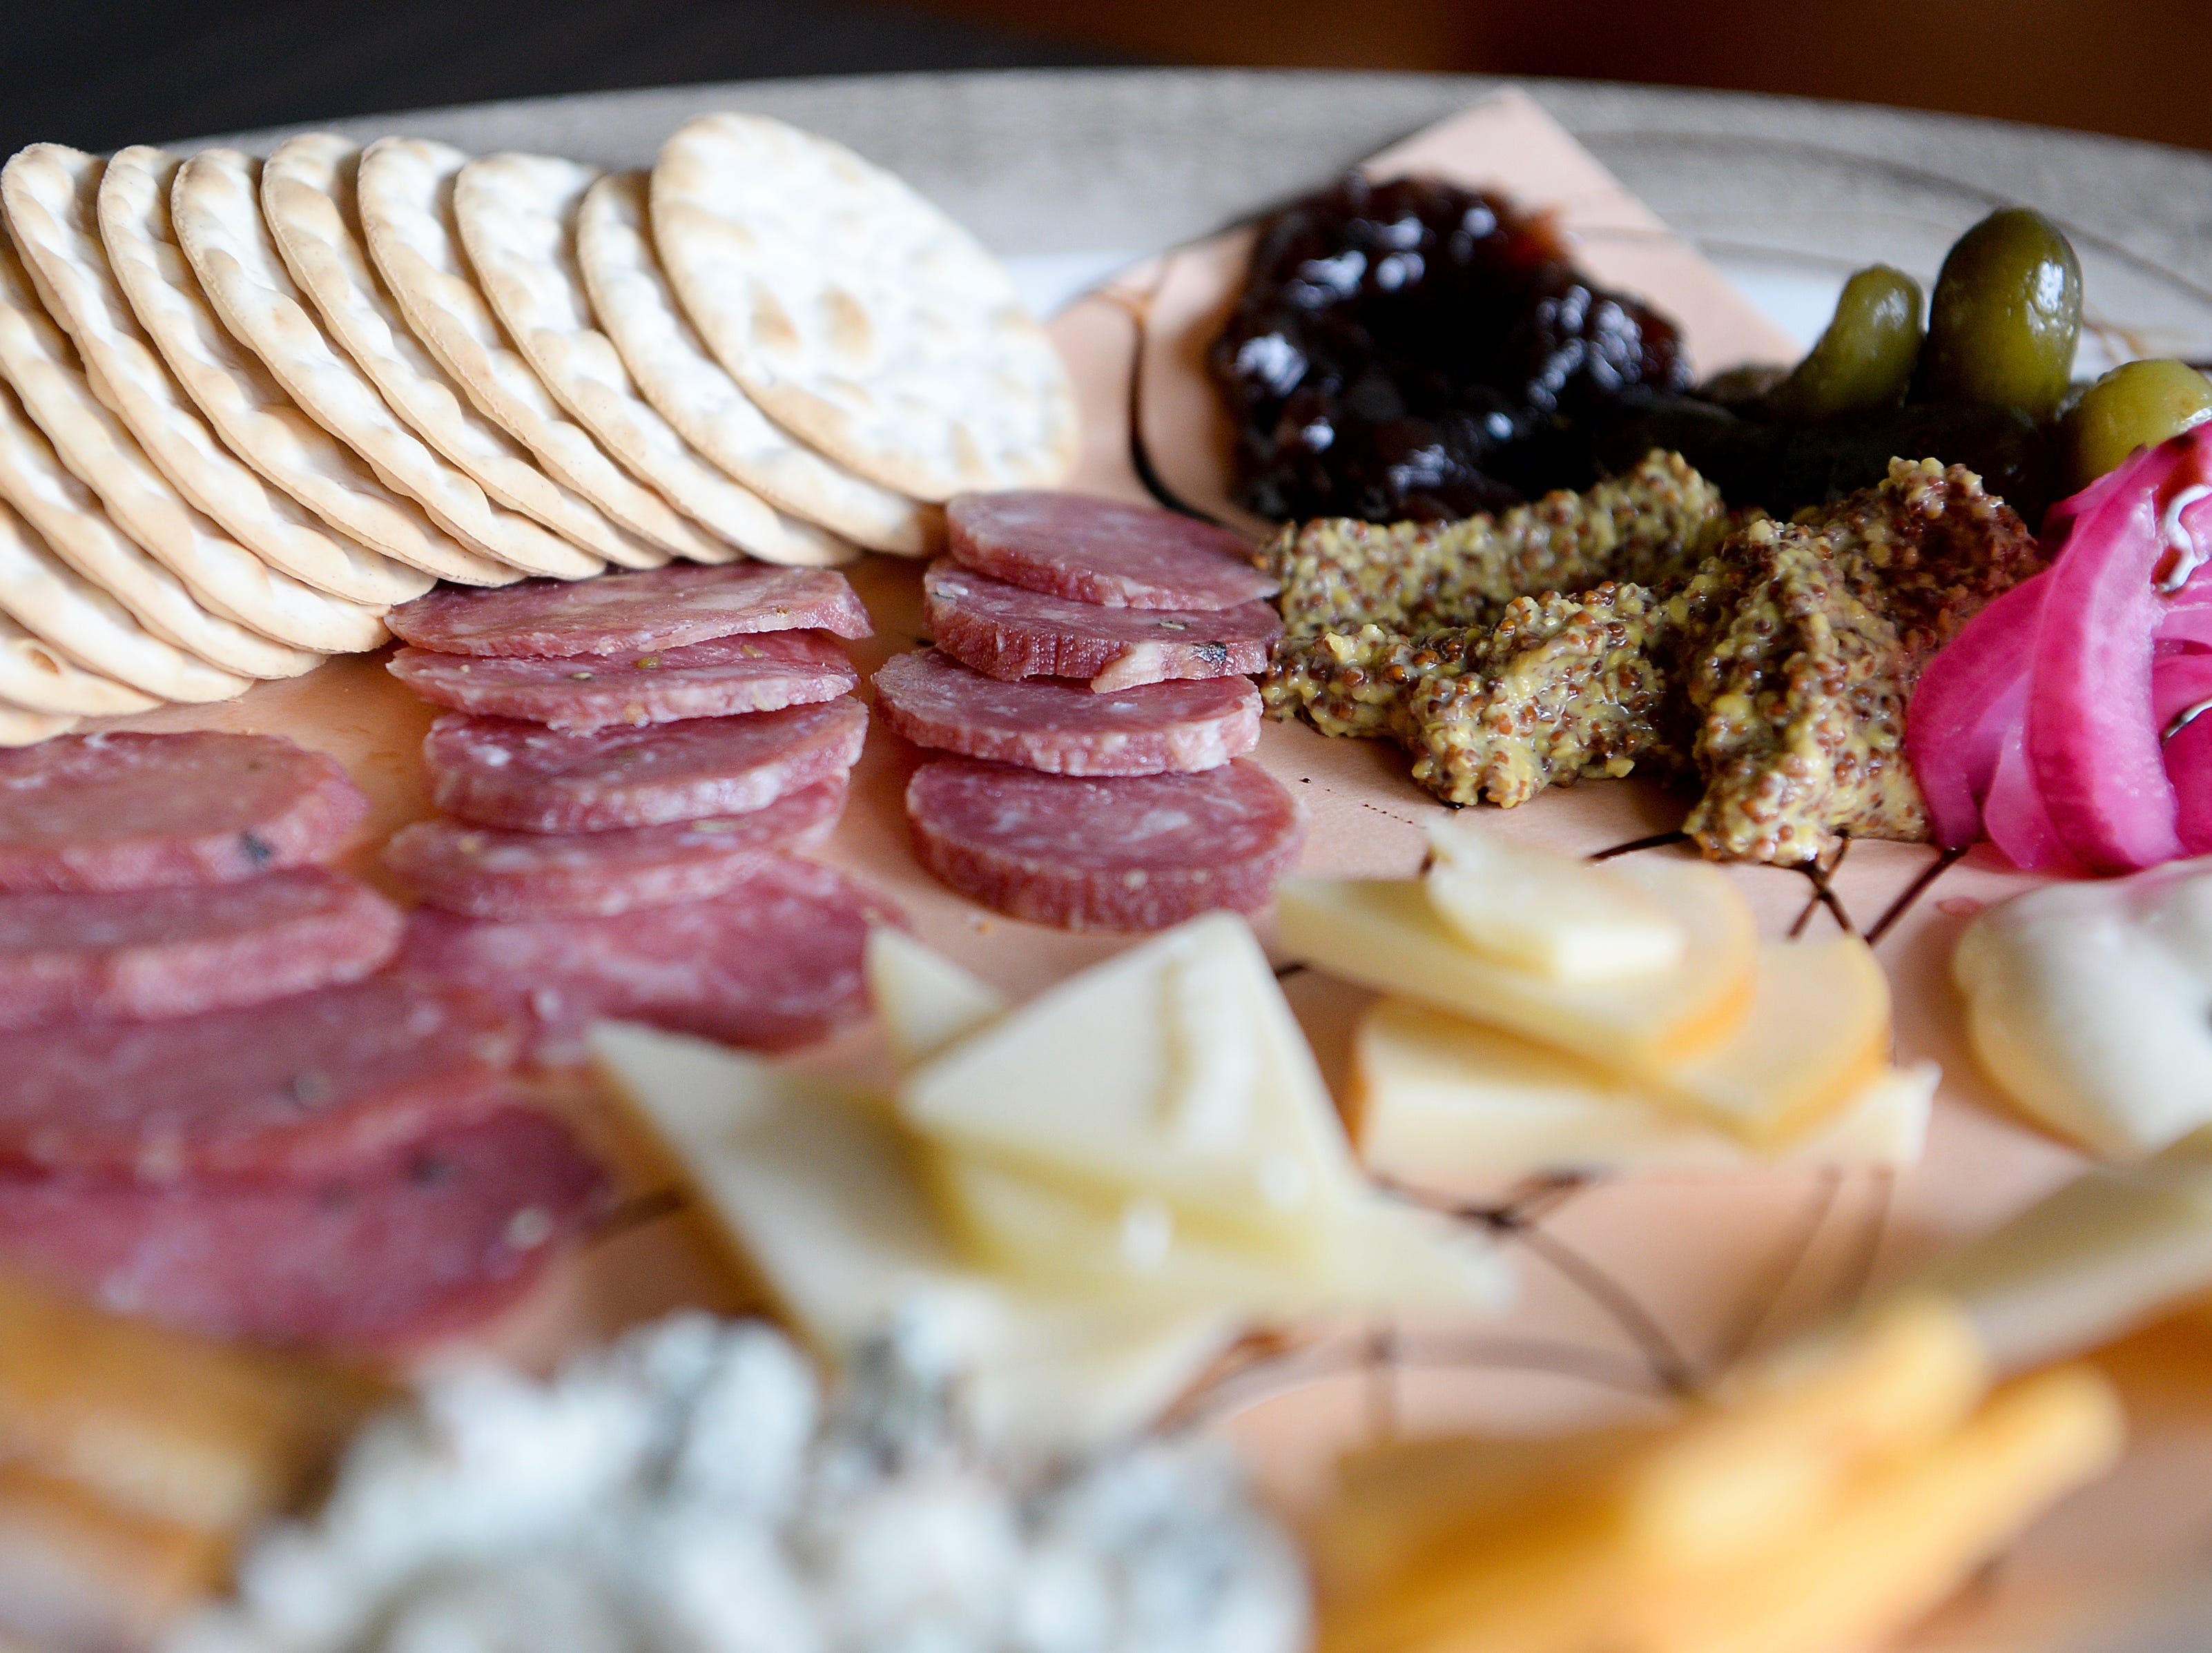 The Jumbo Plate at Little Jumbo combines their cheese plate with their charcuterie board bringing you a selection of five assorted cheeses, a selection of four Hickory Nut Gap farm meats, Sunburst Farms smoked trout and is served with olives, house pickled red onions, gherkins, mustard, and onion jam.